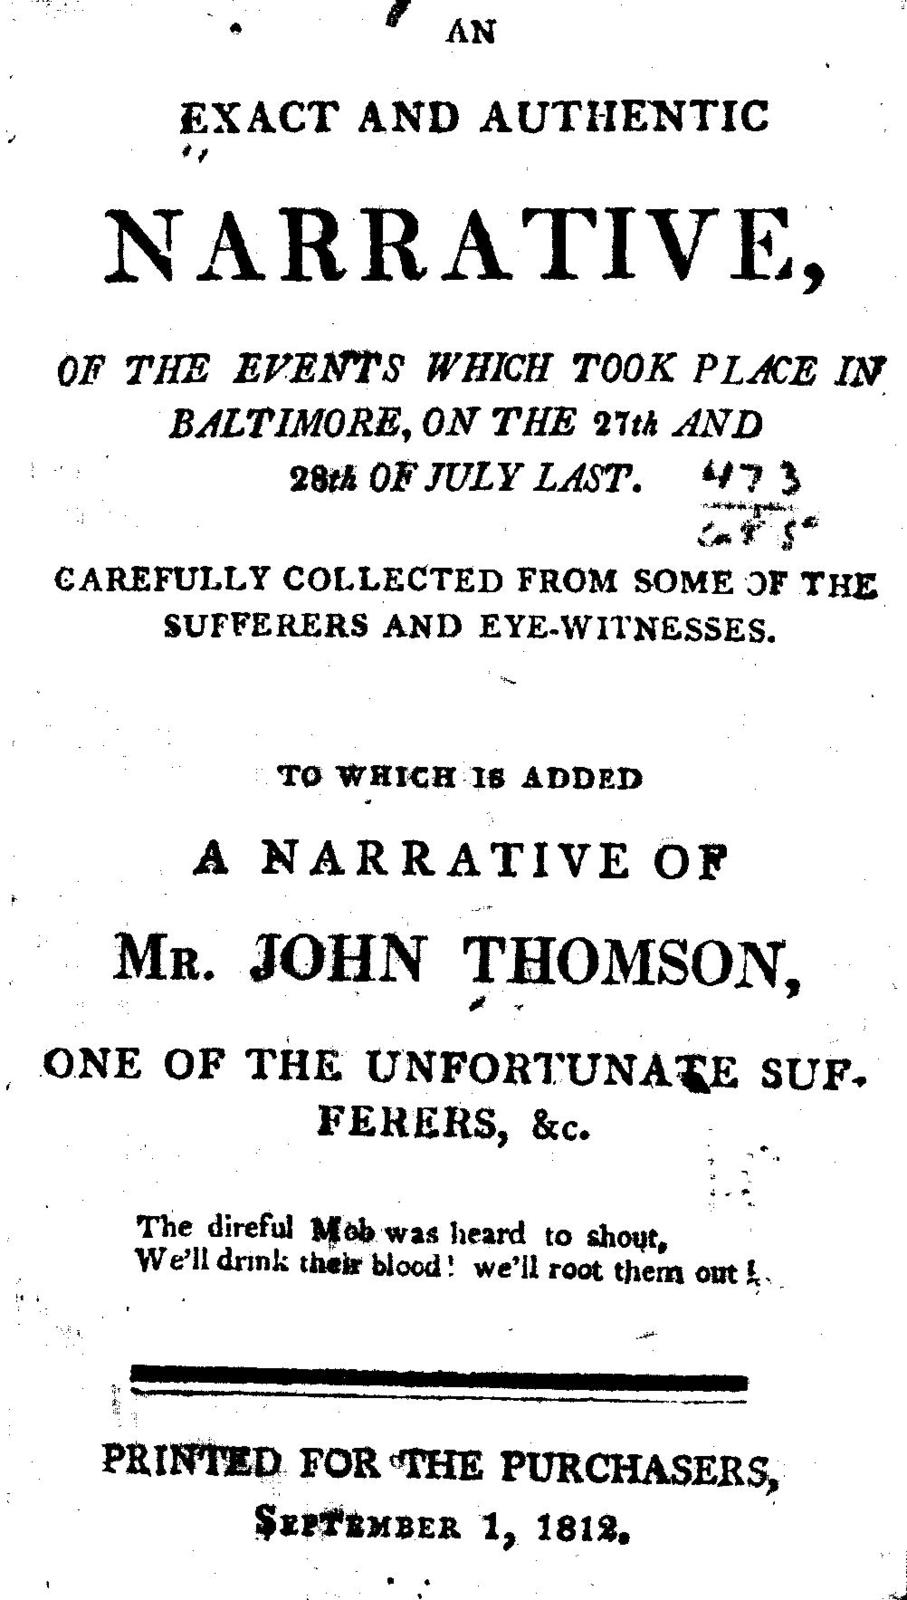 An exact and authentic narrative, of the events which took place in Baltimore, on the 27th and 28th of July last. Carefully collected from some of the sufferers and eyewitnesses. To which is added a narrative of Mr. John Thomson, one of the unfortunate sufferers, ...